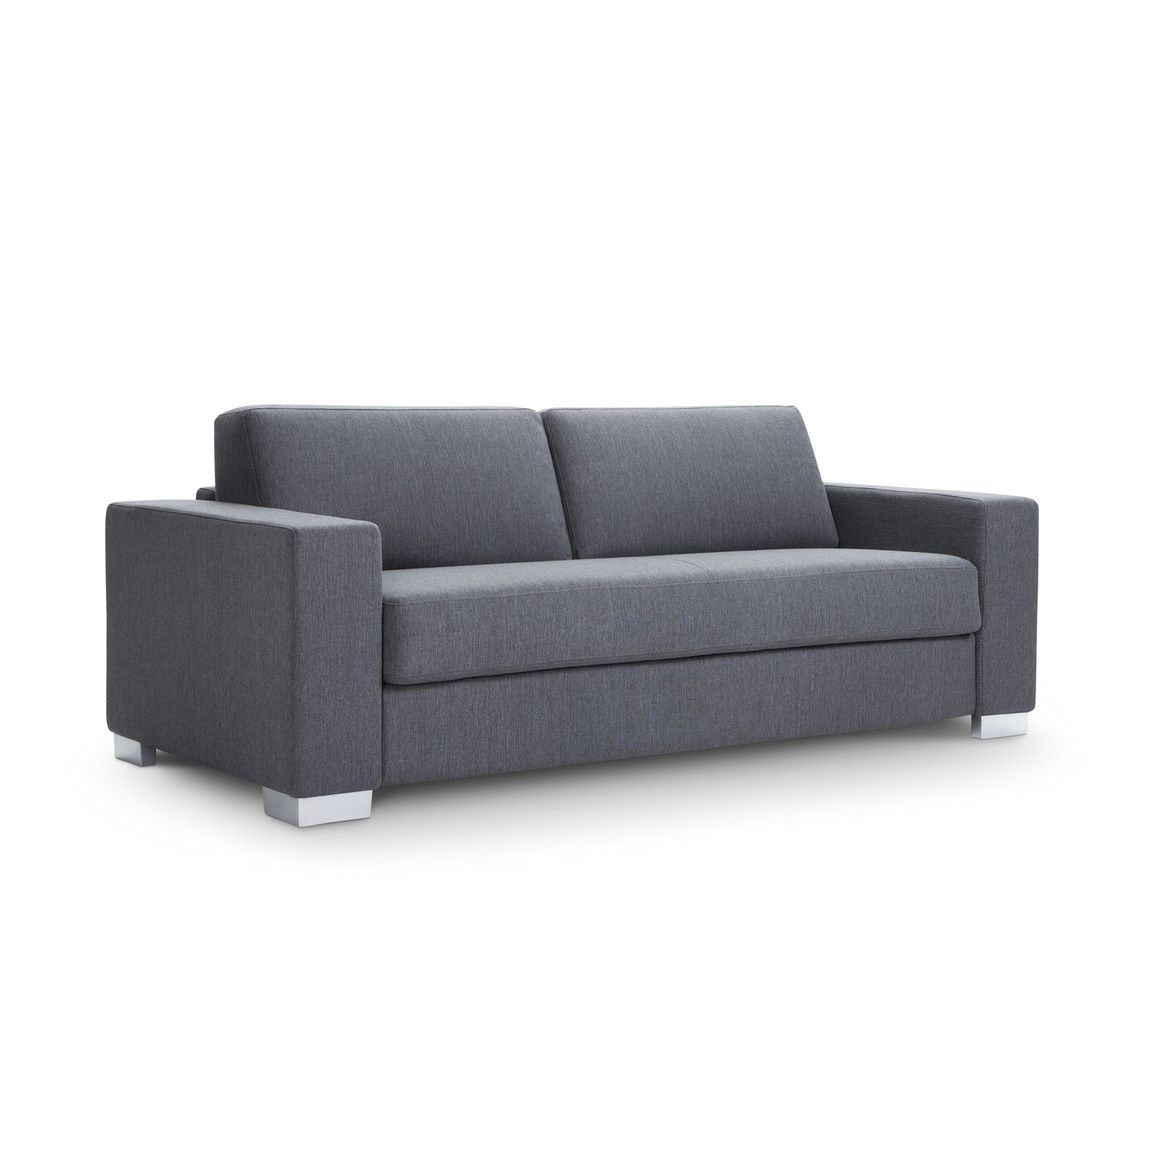 Bettsofa Interio Ch 2 5er Bettsofa Wilson Anthrazit Metall Pulverbeschichtet